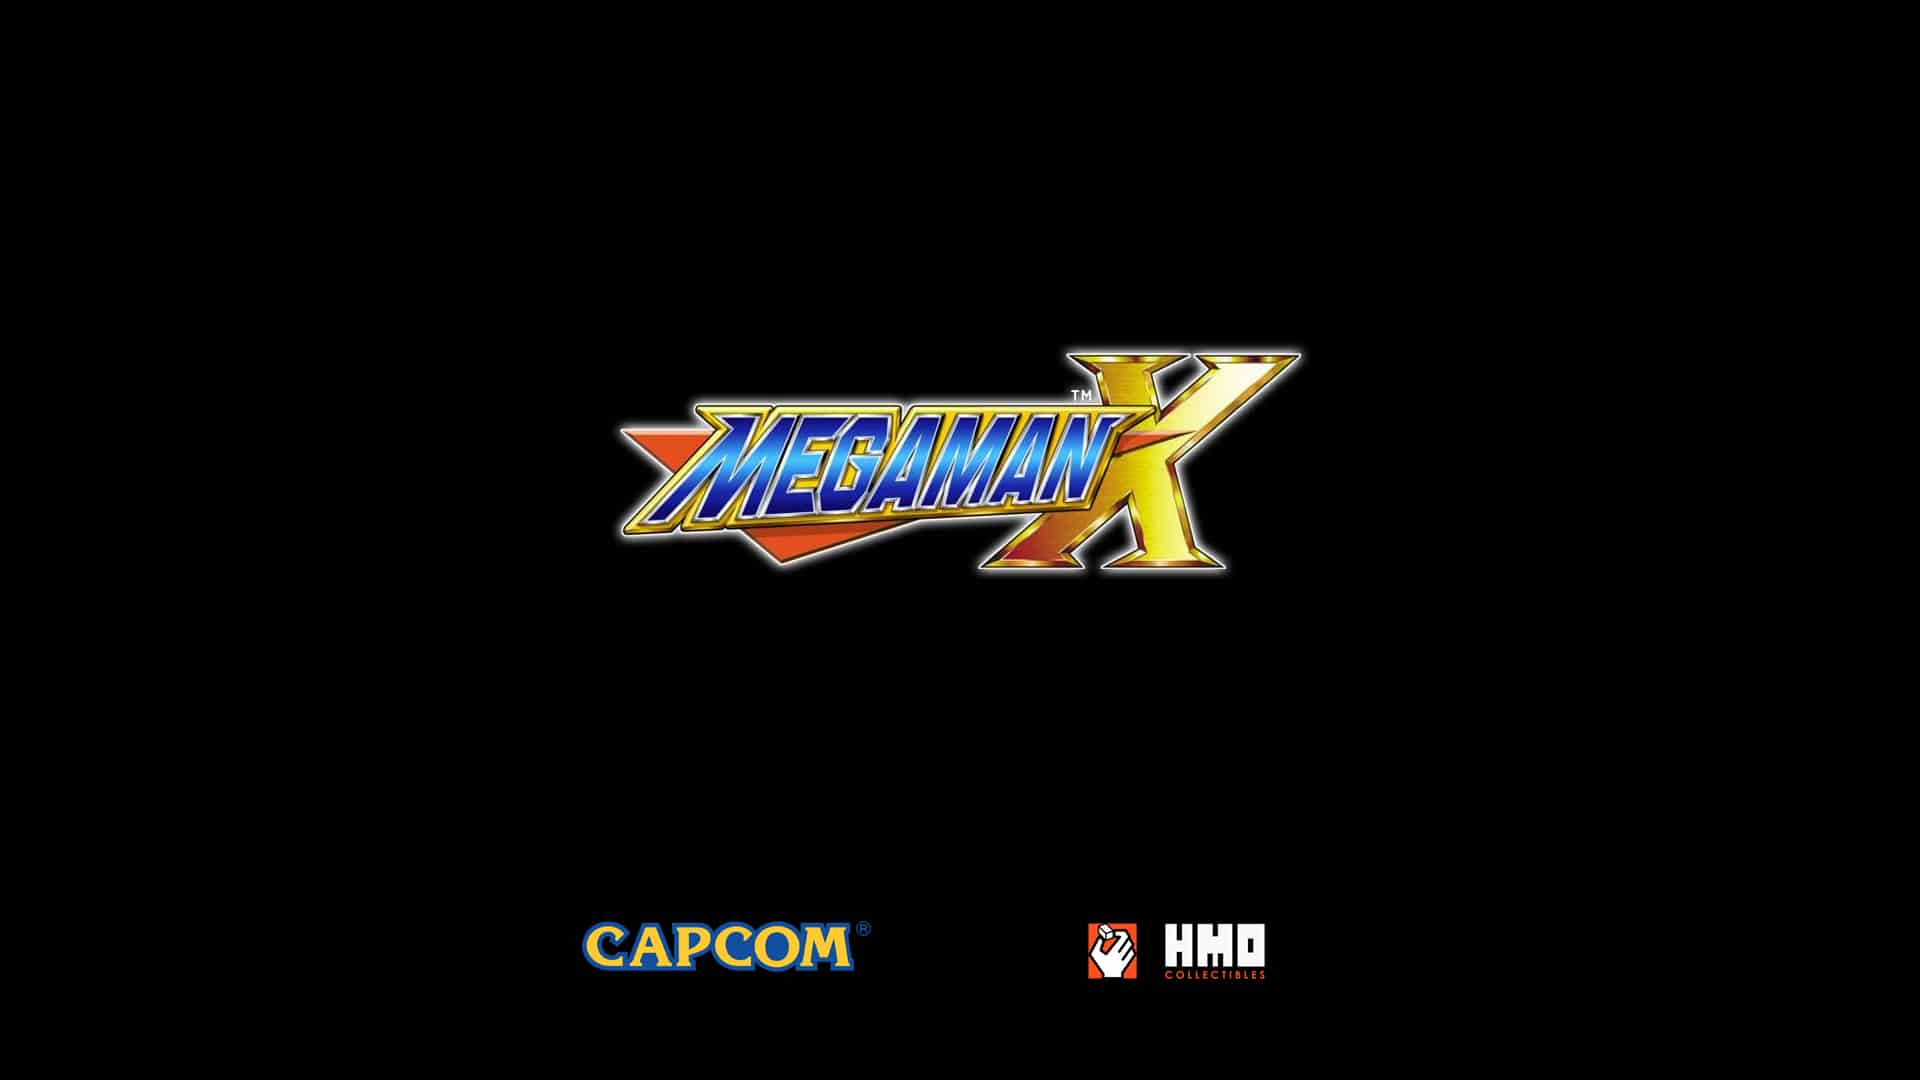 Megaman X is Incoming.